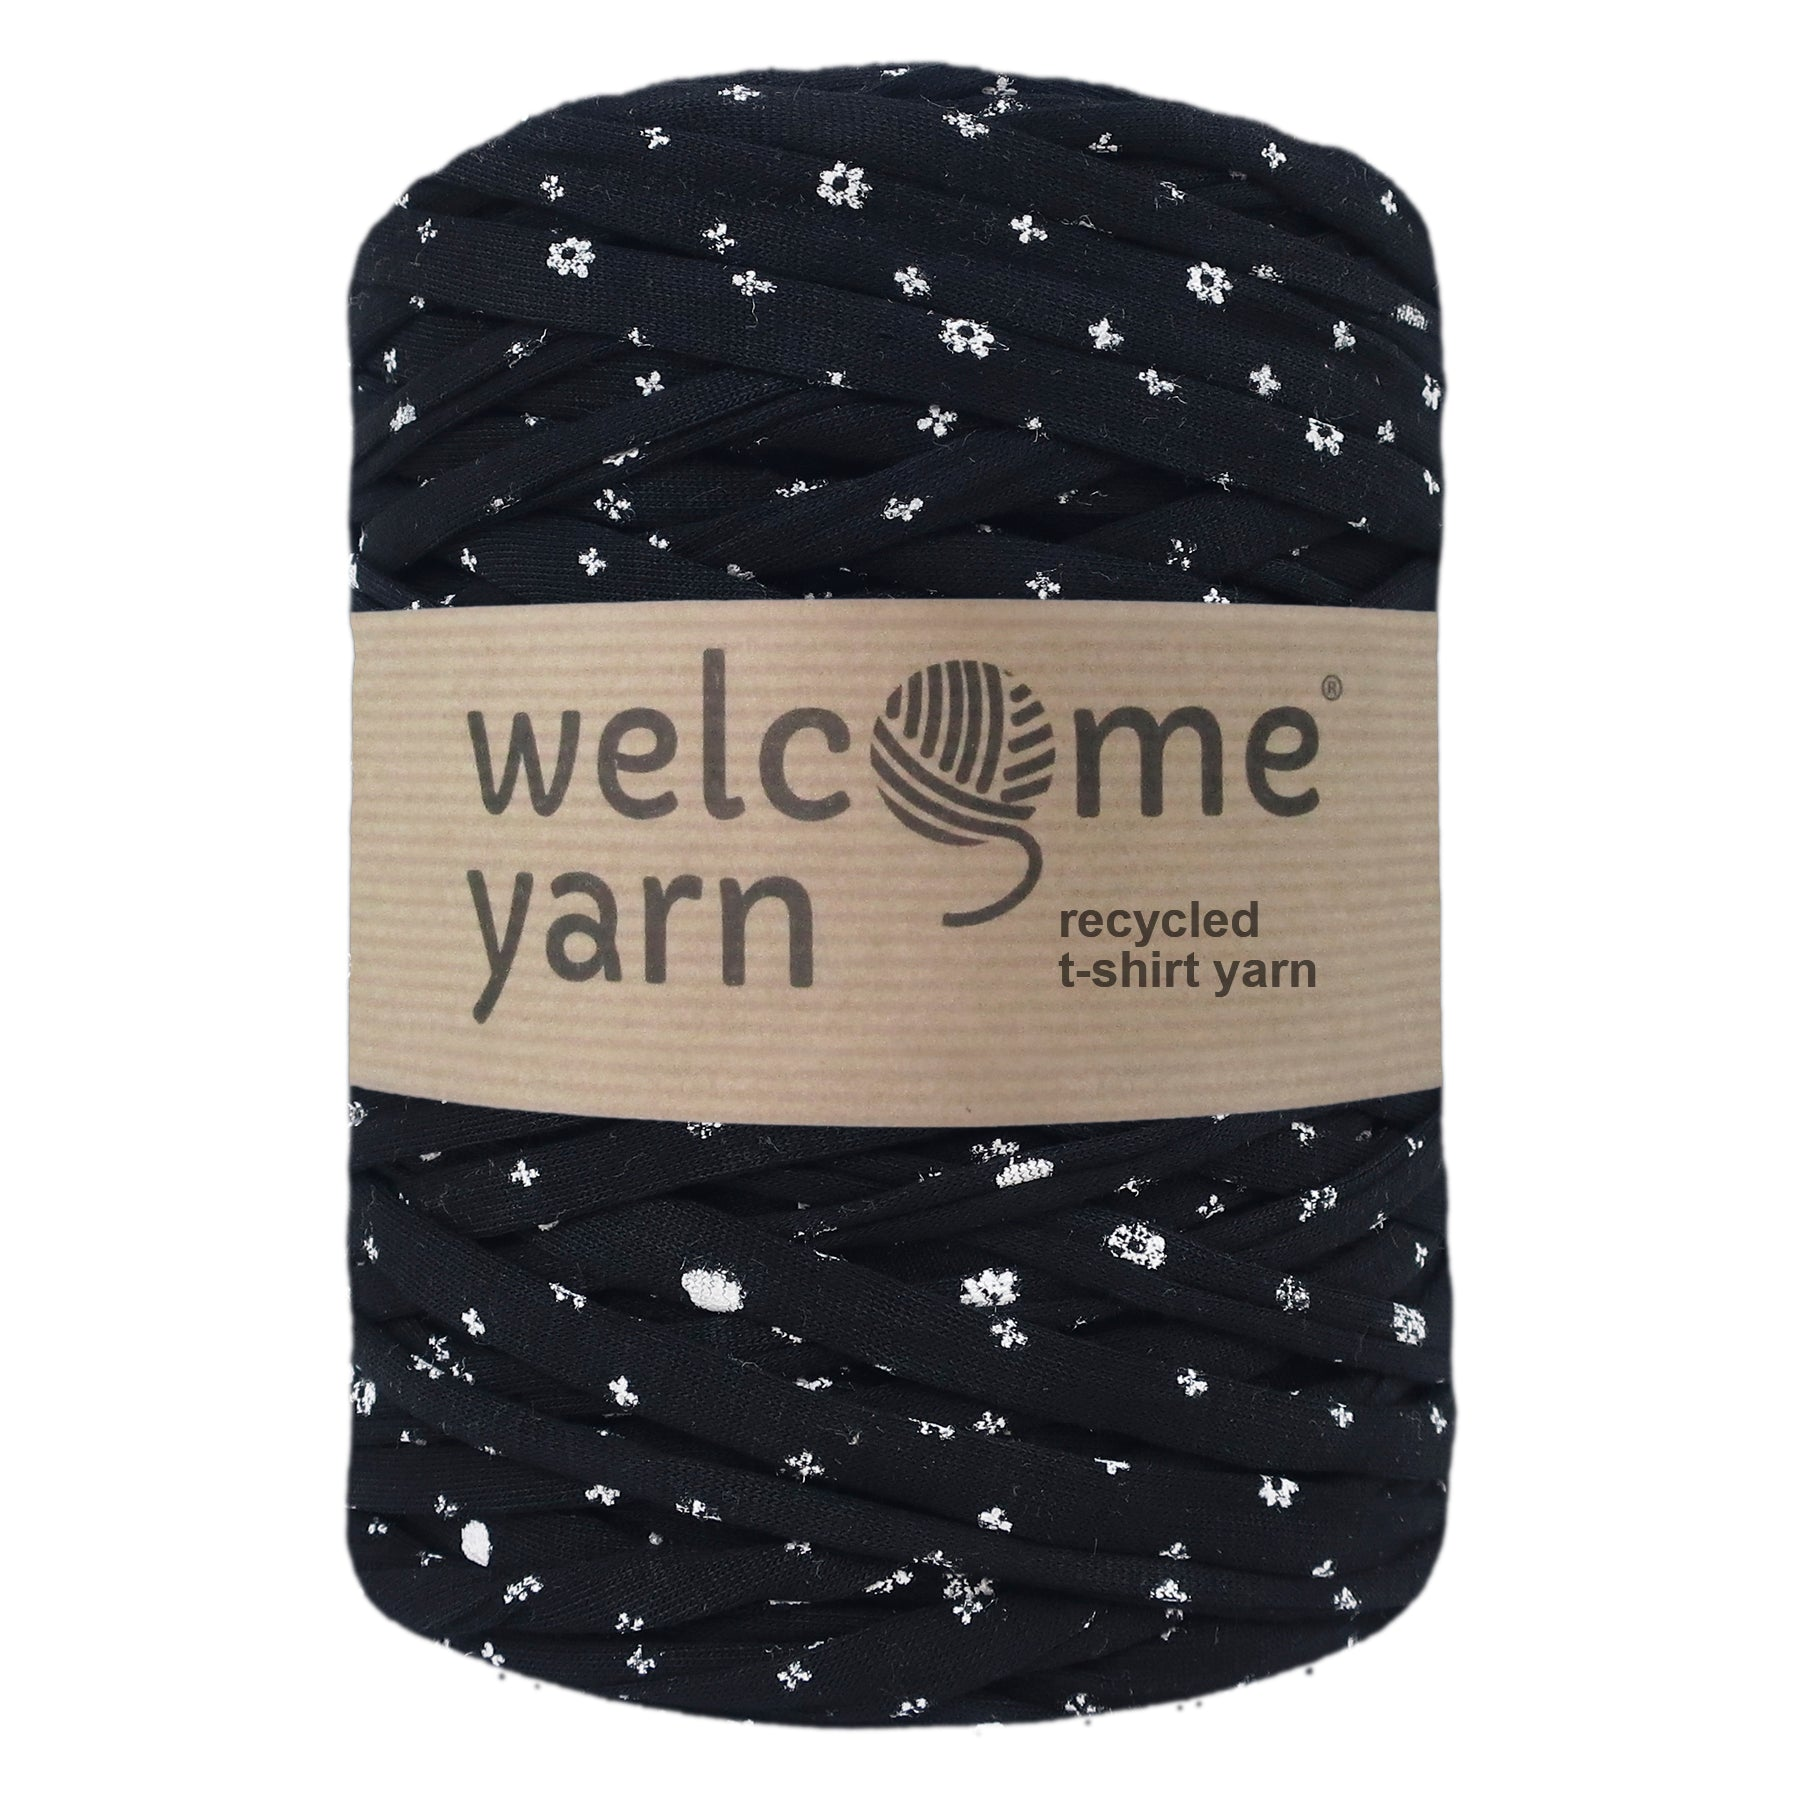 T-shirt Yarn Black with Flowers